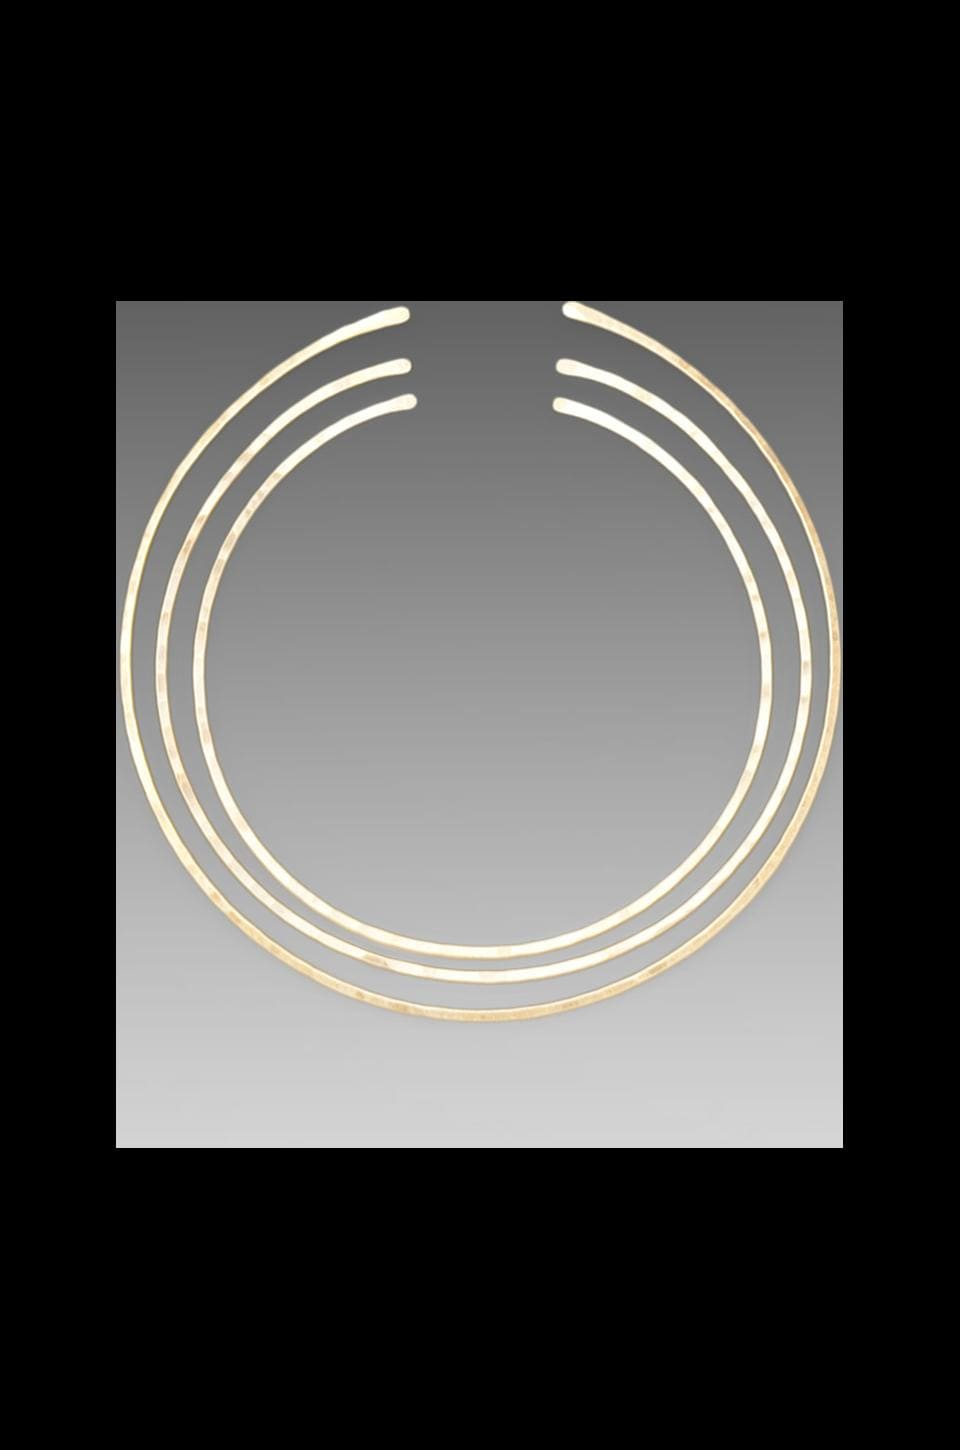 2 Bandits Circle Game Small Choker Set in Gold